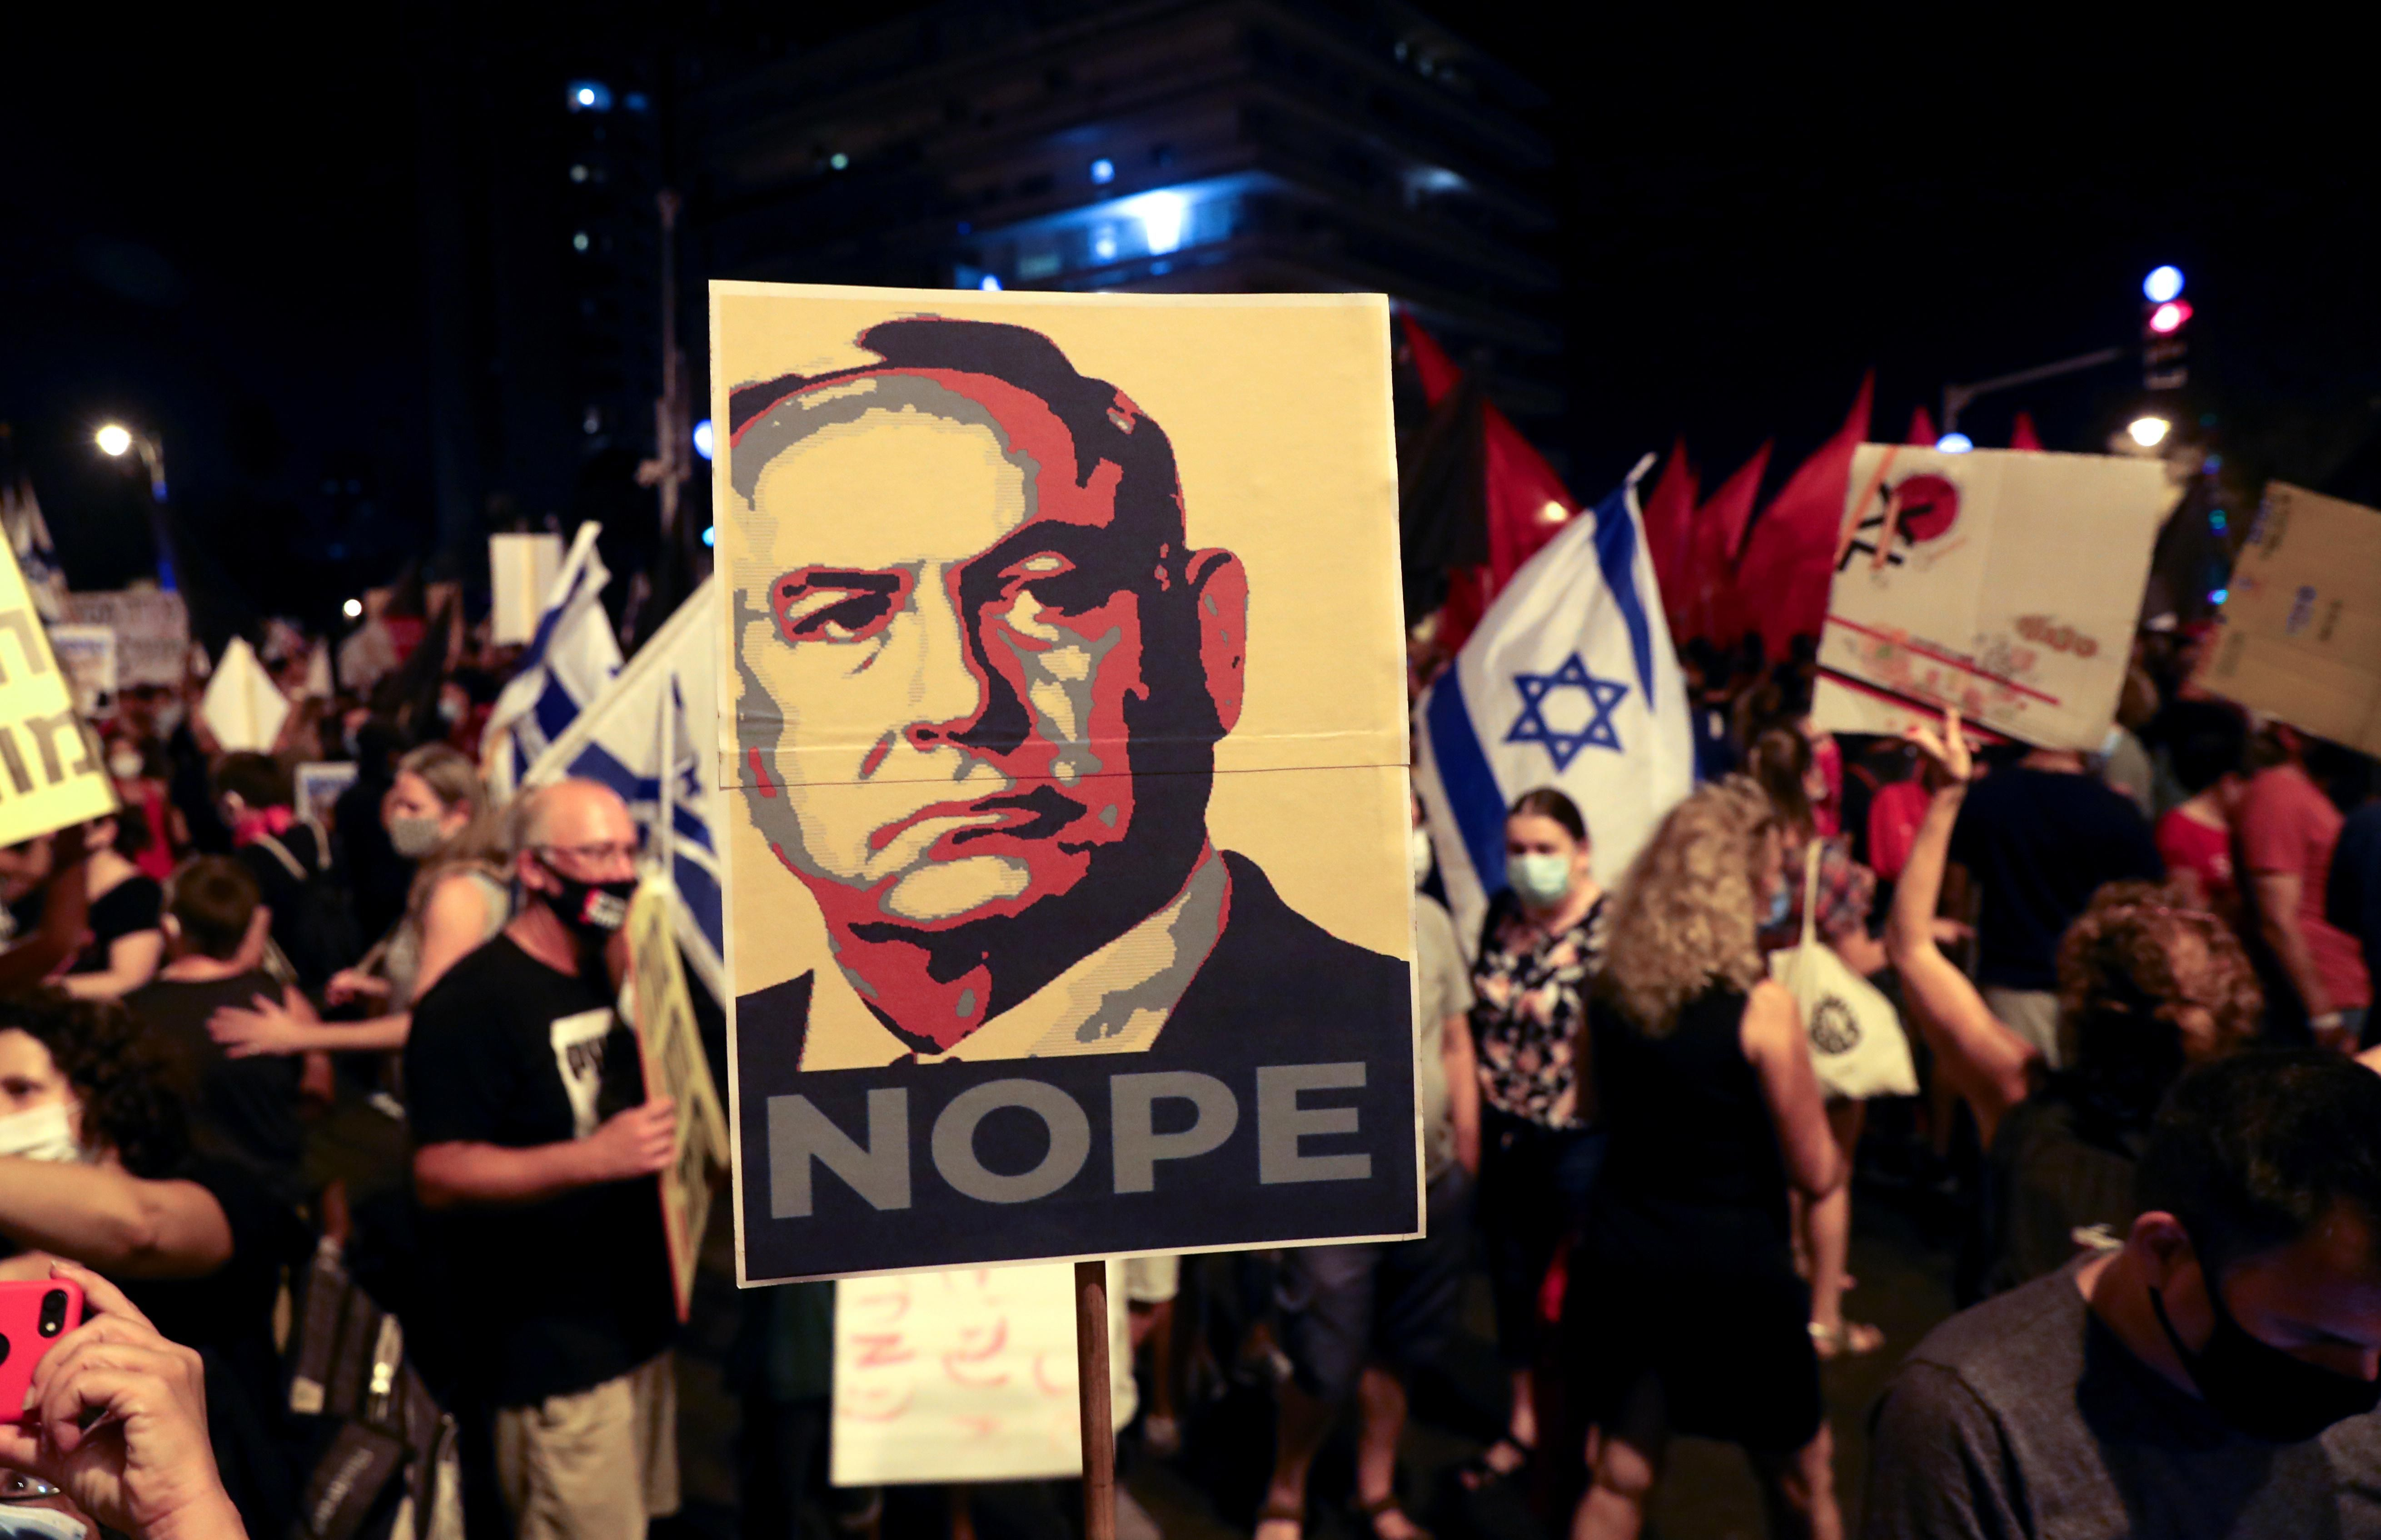 """Protesters holding an image of Israel's Prime Minister Benjamin Netanyahu pasted with the slogan """"NOPE"""""""